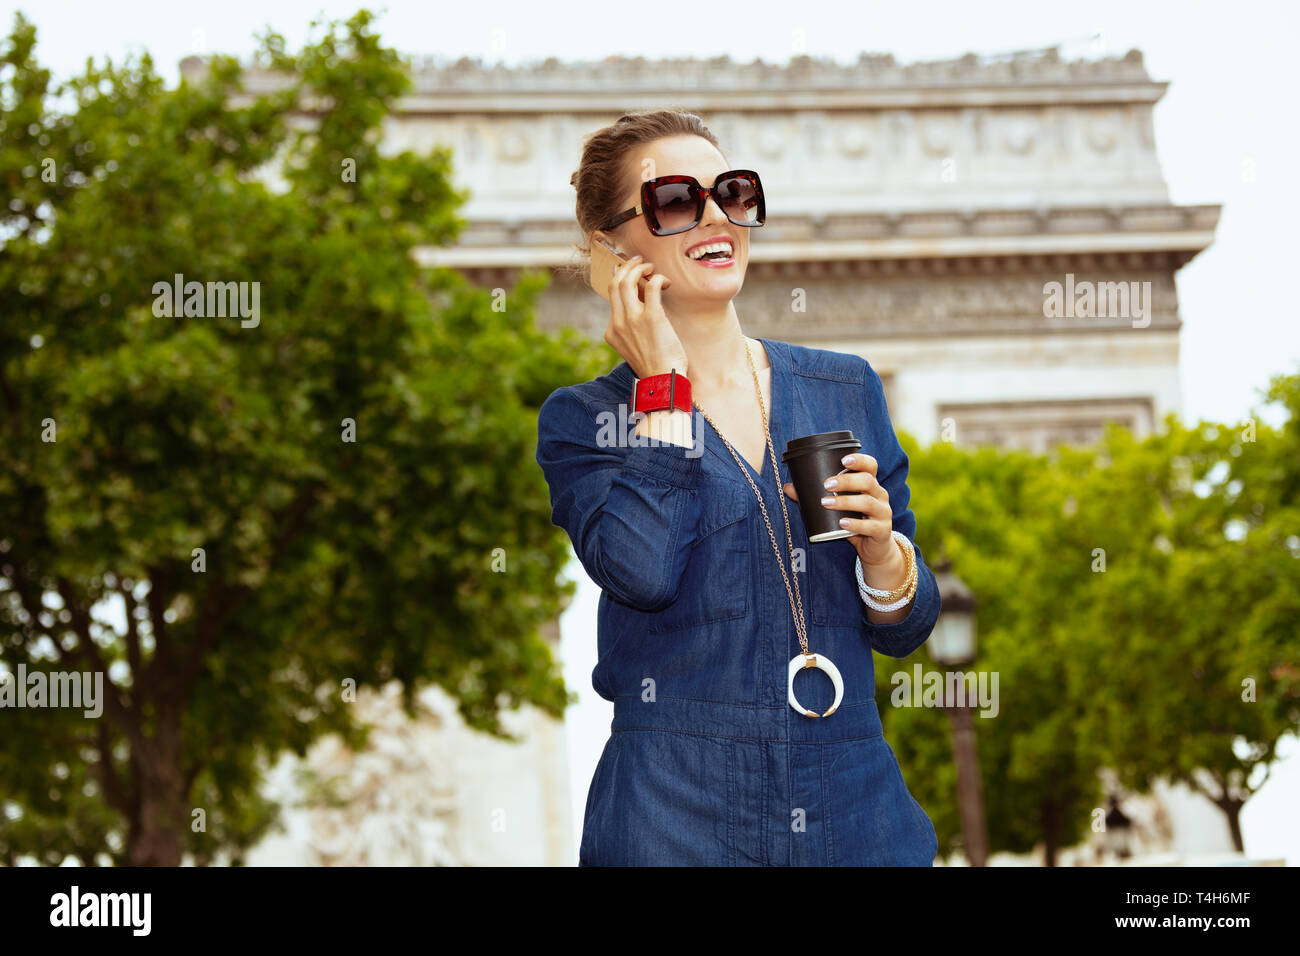 smiling elegant solo traveller woman in sunglasses with coffee cup using a smartphone in Paris, France. Stock Photo